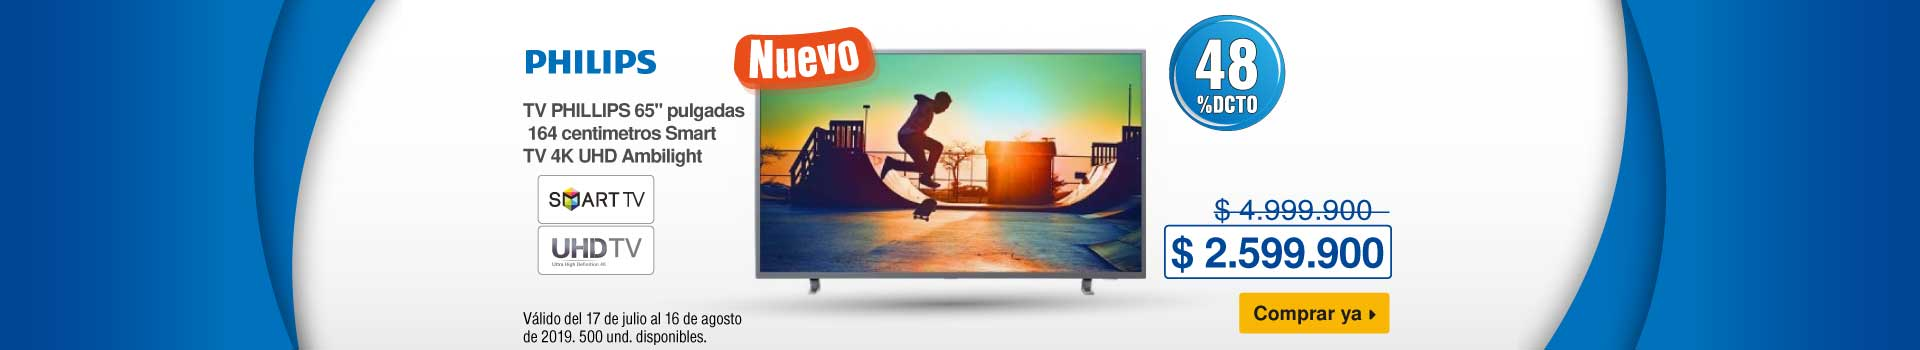 AK-TV-PHILLIPS-65PUT6703-Categoria_Televisores2-19JUL